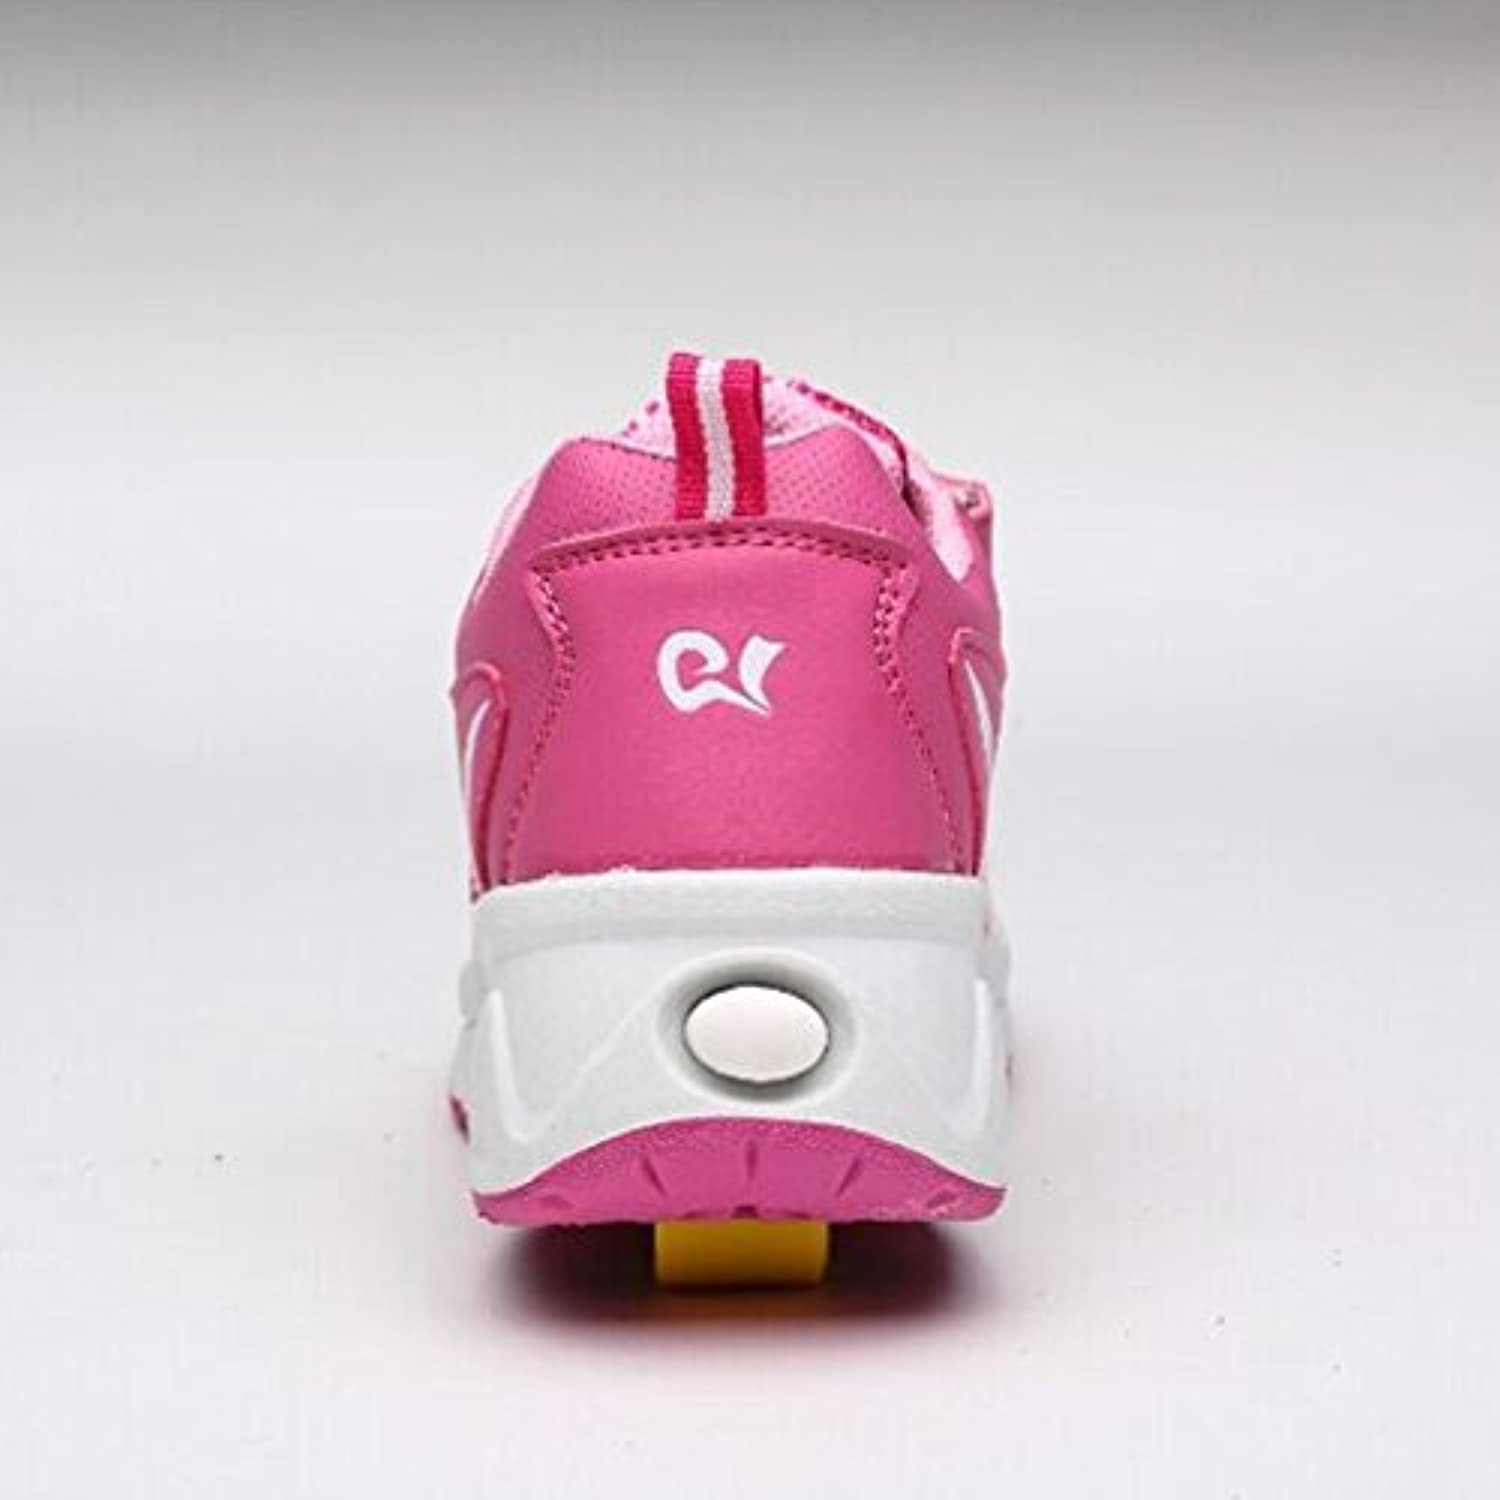 Roller skate trainers / sneakers with automatic wheels - Pink - UK 1 - EU 33